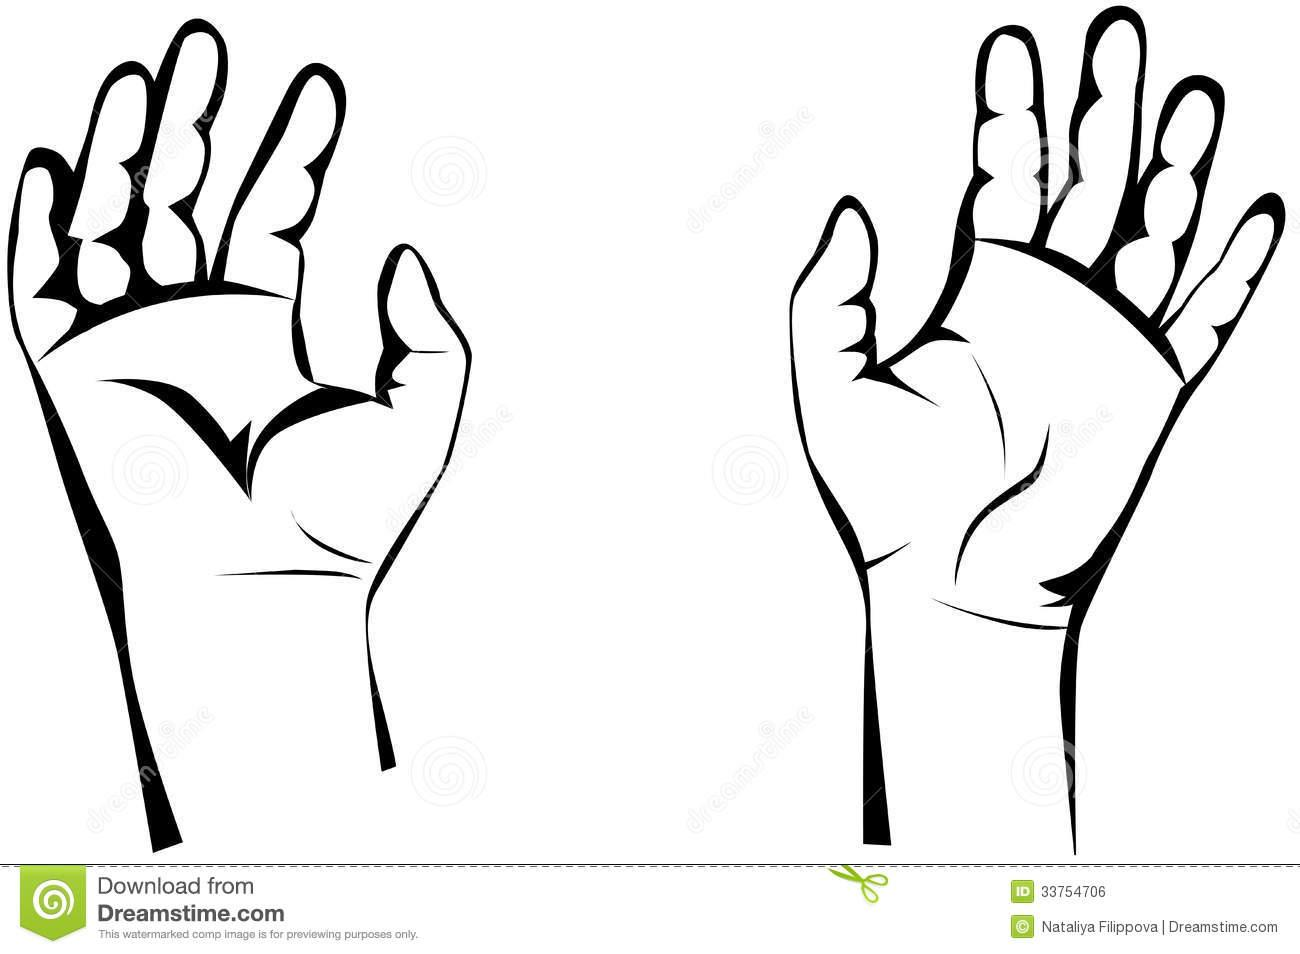 Two Hands Clipart | Free download best Two Hands Clipart on